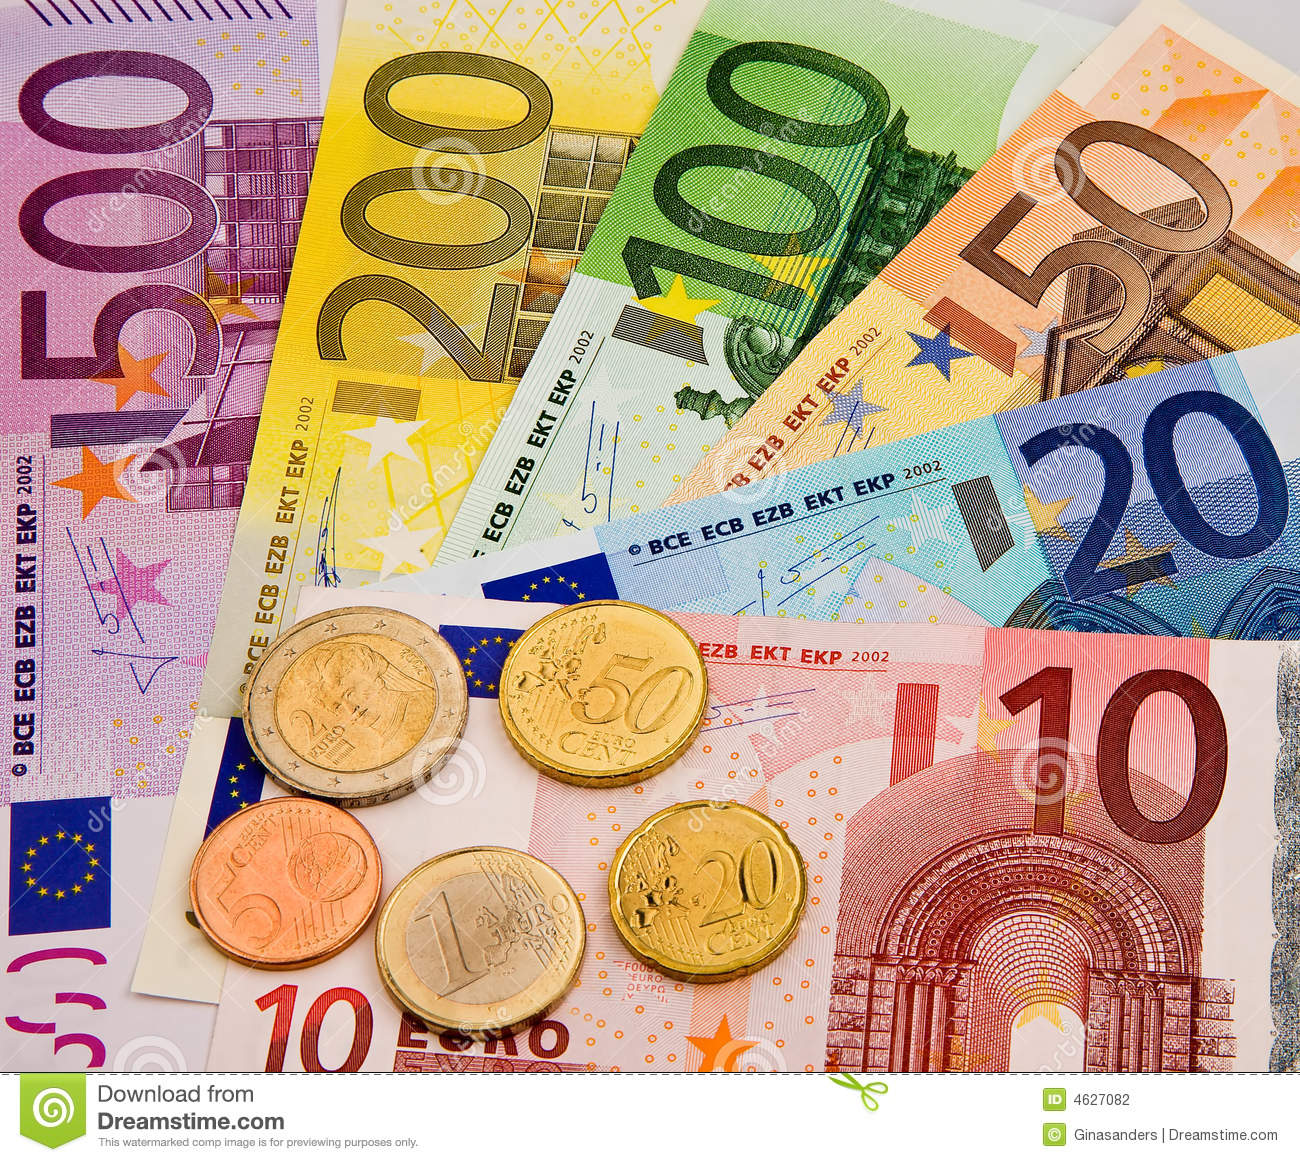 the euro currency and european union economics essay Membership of the single european currency area - the euro zone - is required for nations entering the european union but they must first meet the convergence criteria set out for participating nations and then make a final decision on whether or not the time is right to join here are the countries .